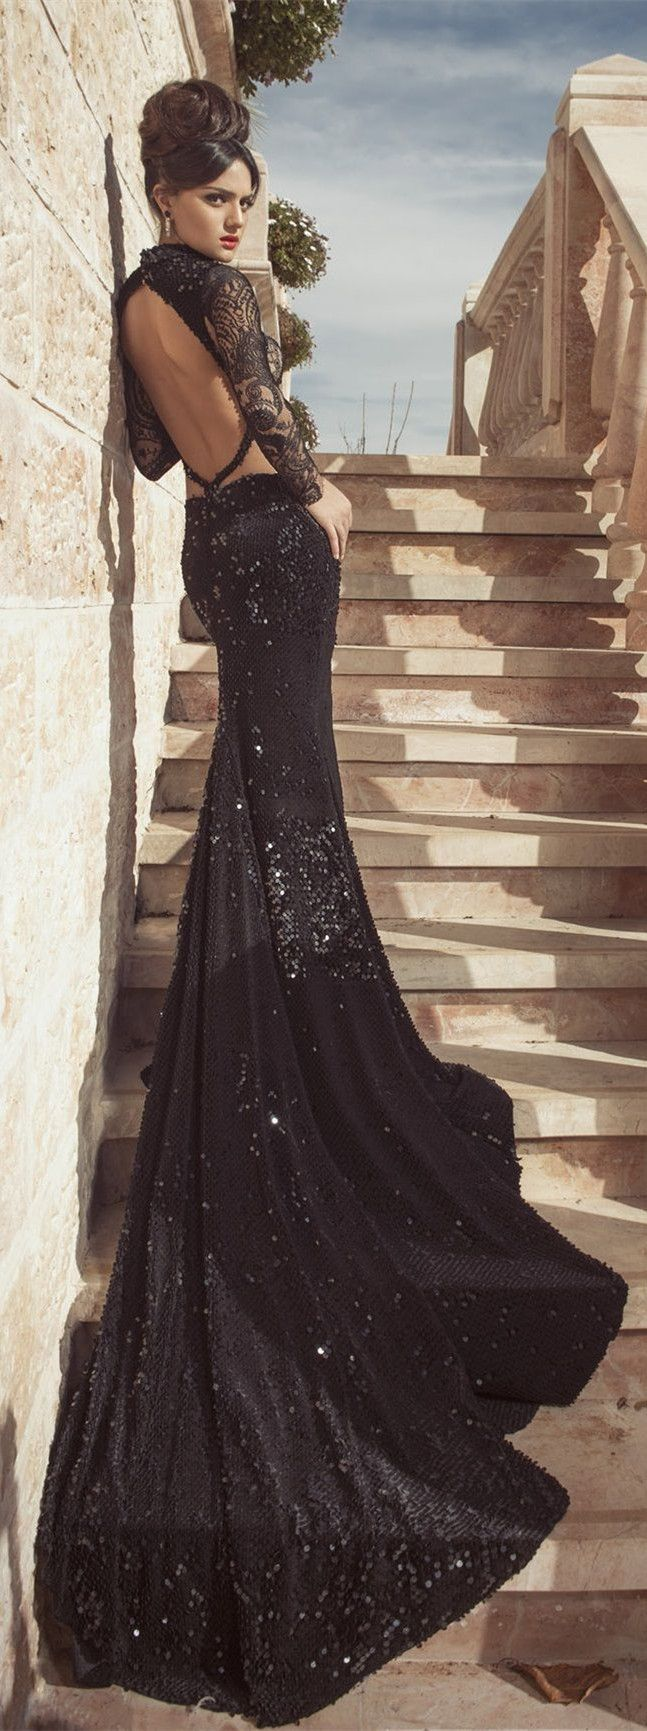 best images about gown shoot on pinterest sexy formal dresses